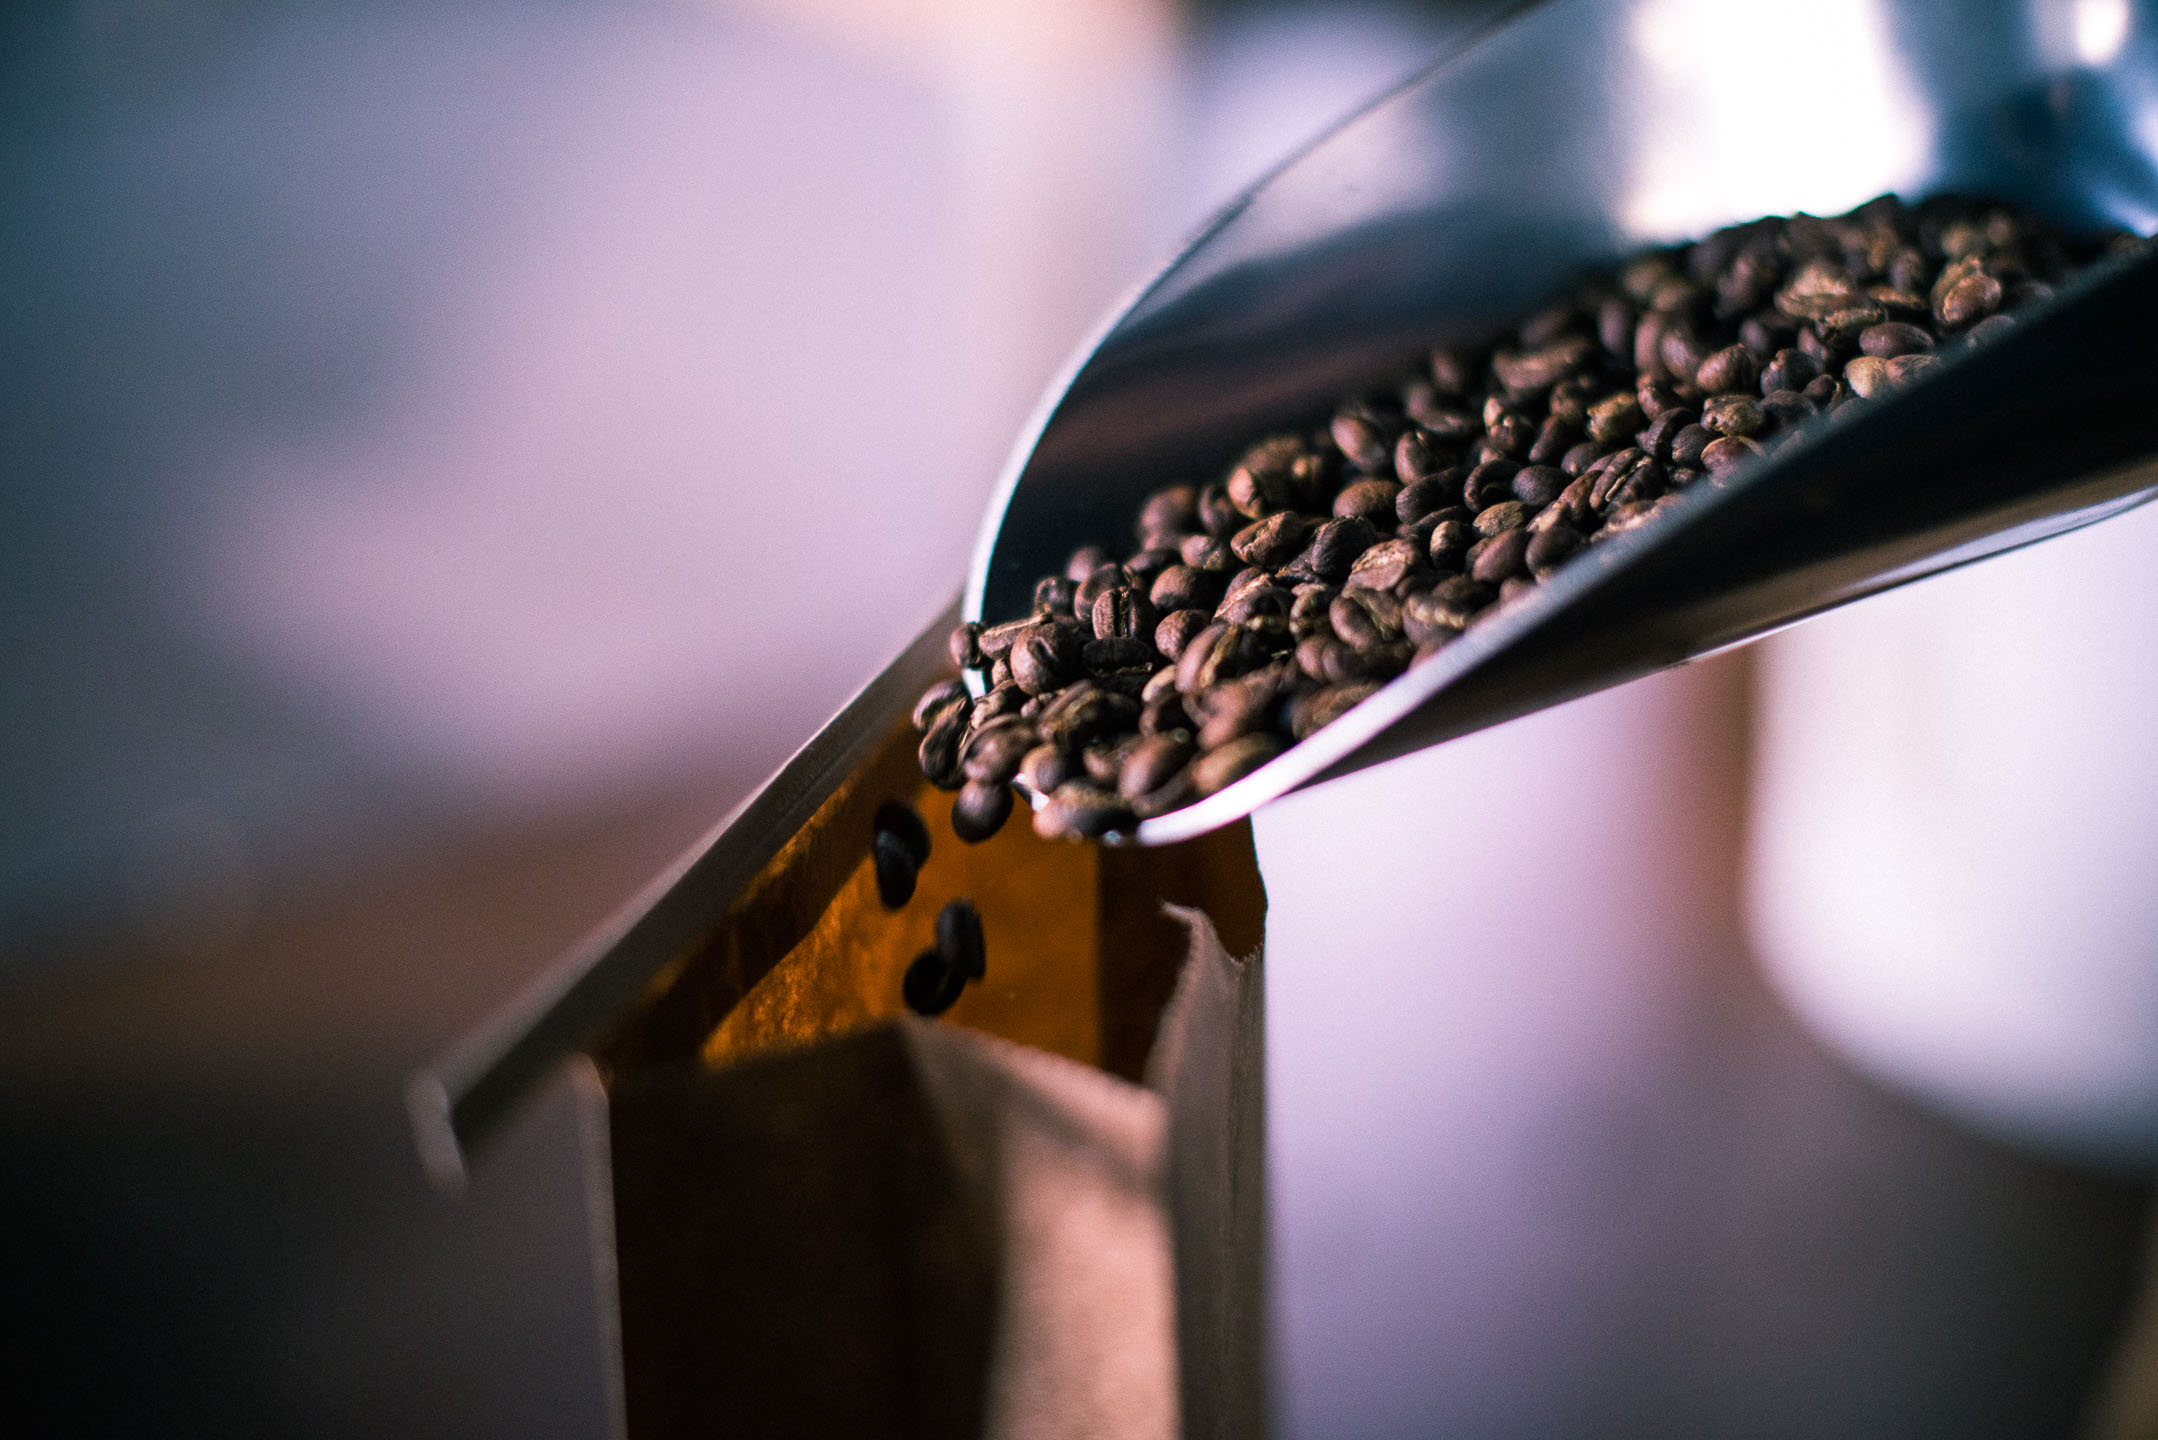 Chad_Kirkand_Photography_COFFEE-005